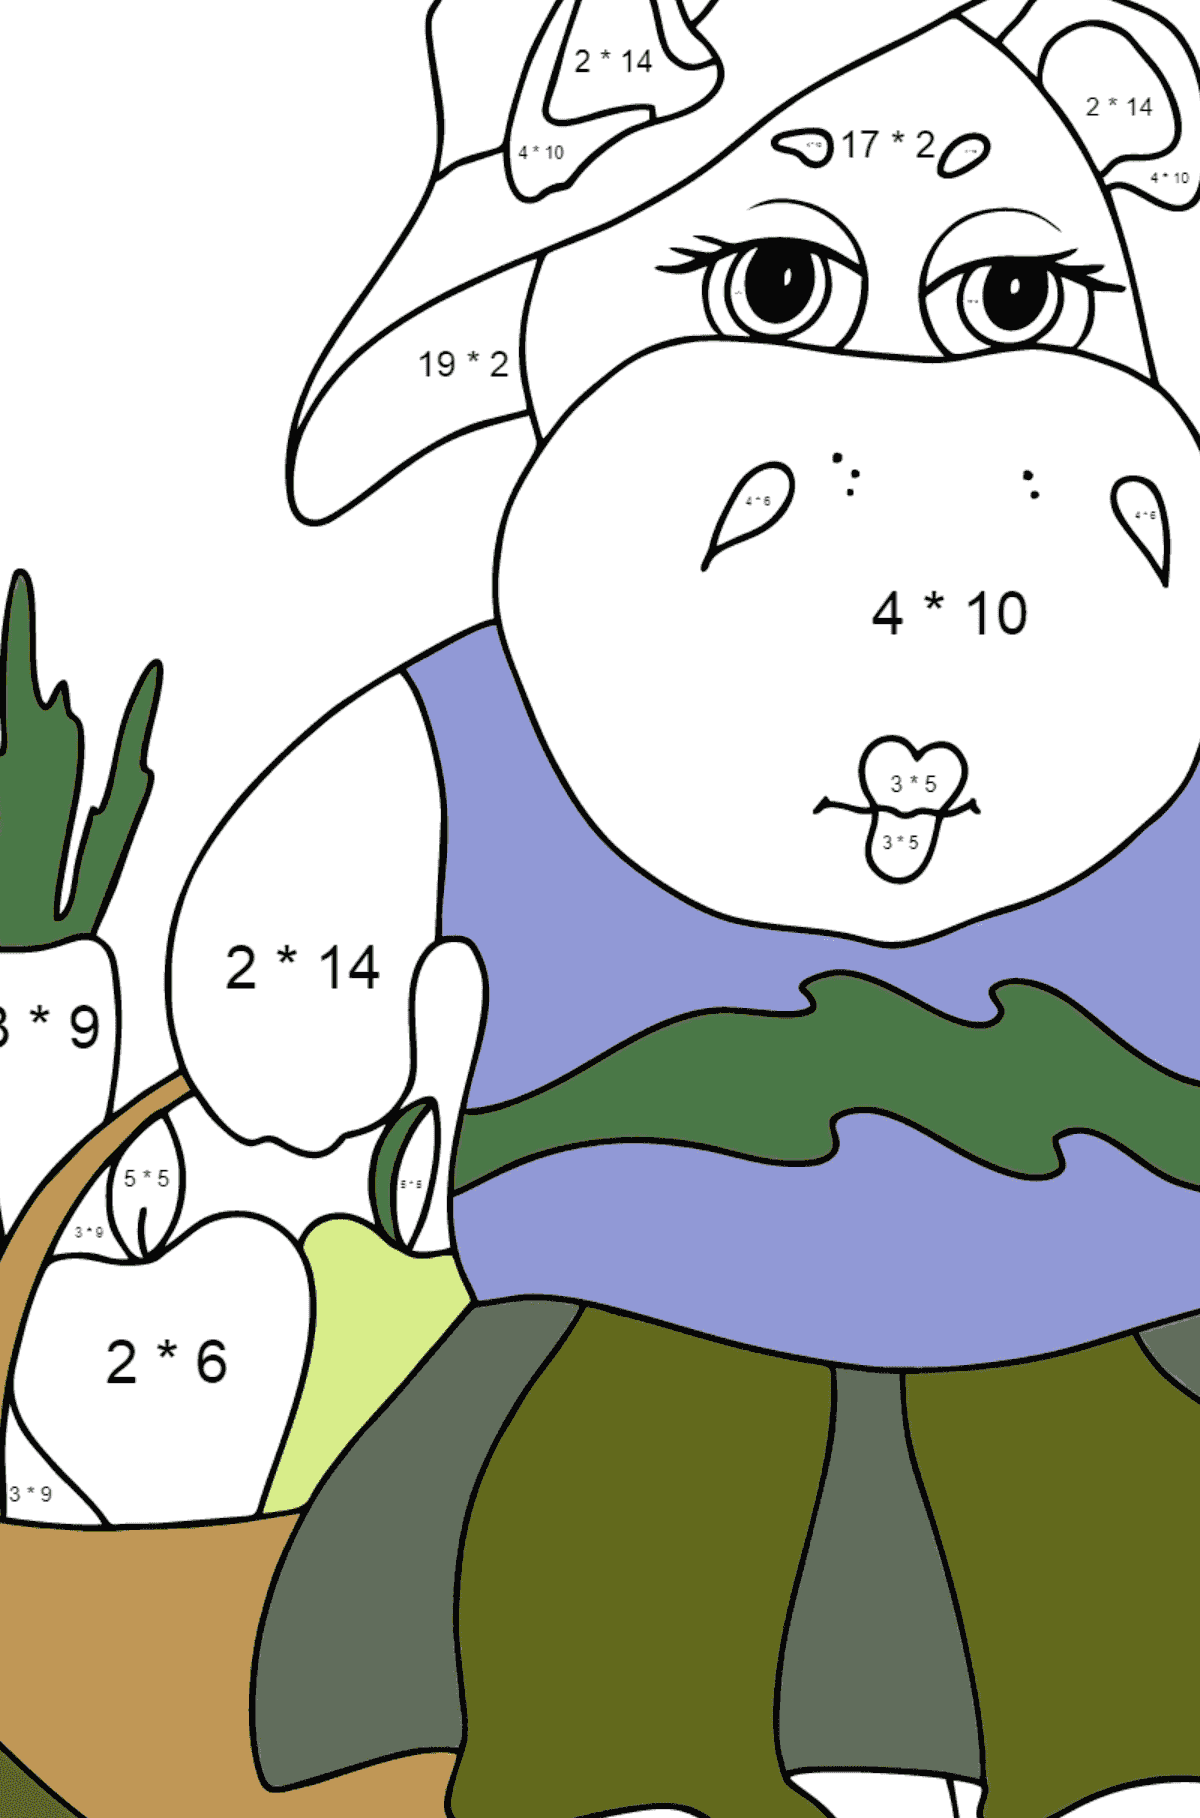 Coloring Page - A Hippo with a Crop Basket for Children  - Color by Number Multiplication